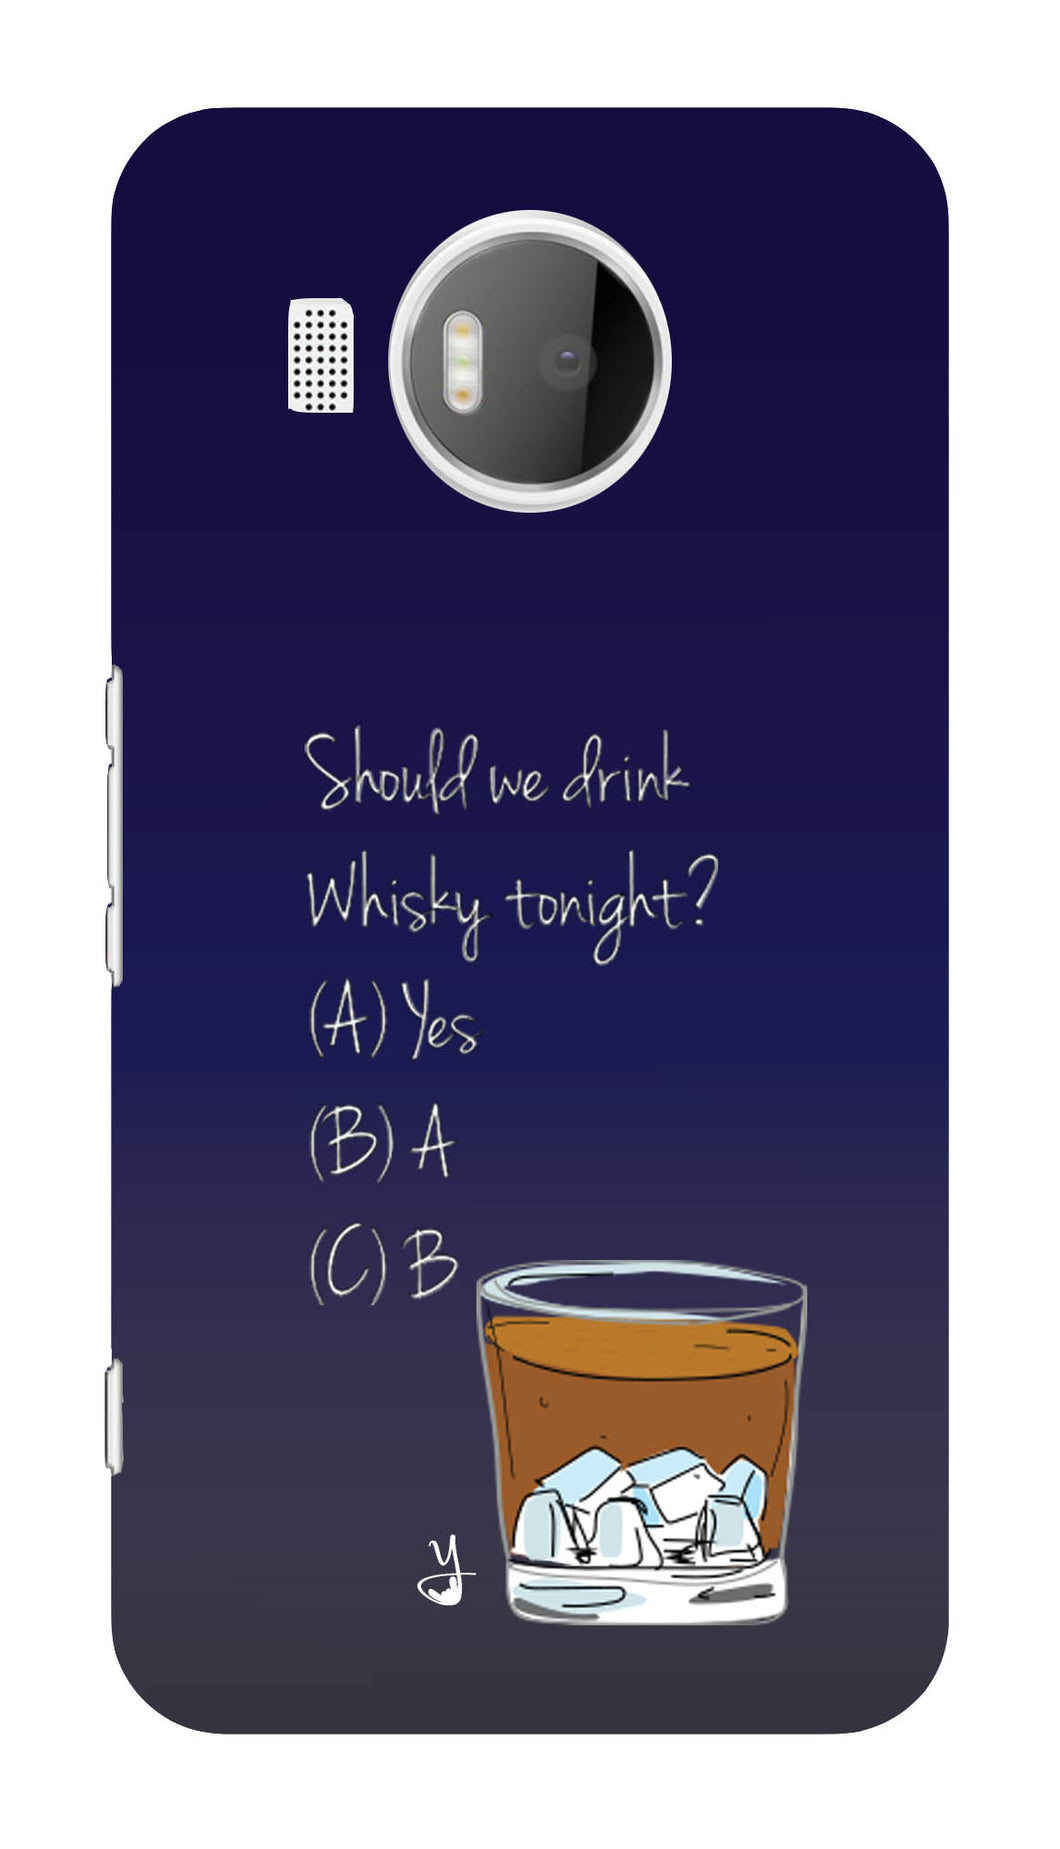 GET DRUNK edition for MICROSOFT LUMIA 950 XL